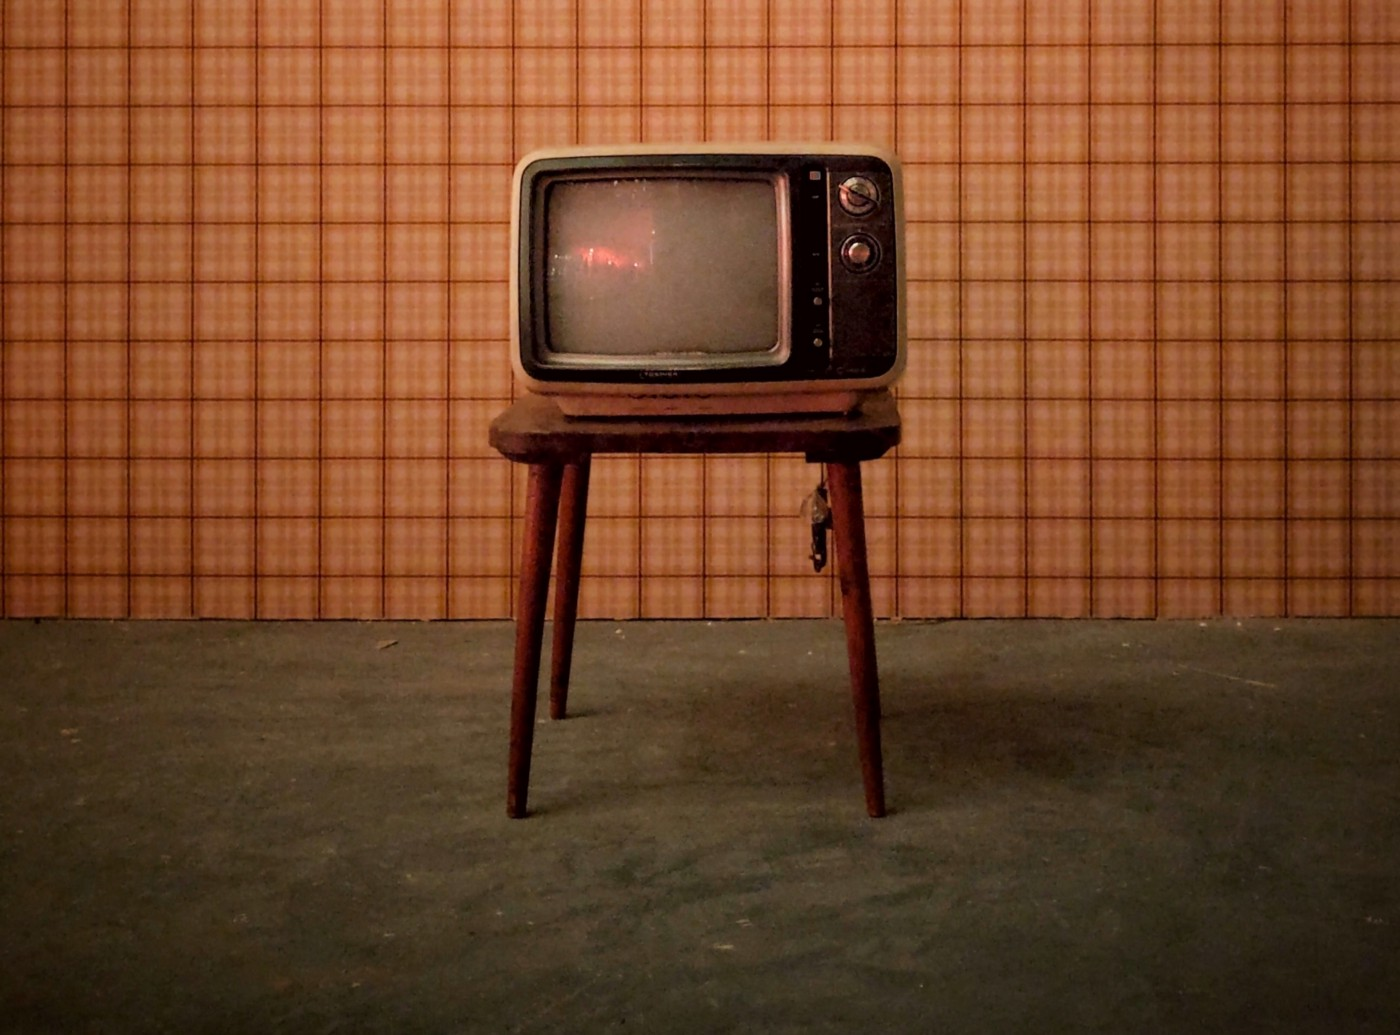 Vintage TV on a wooden table. Gray carpet underneath and a plaid striped background.